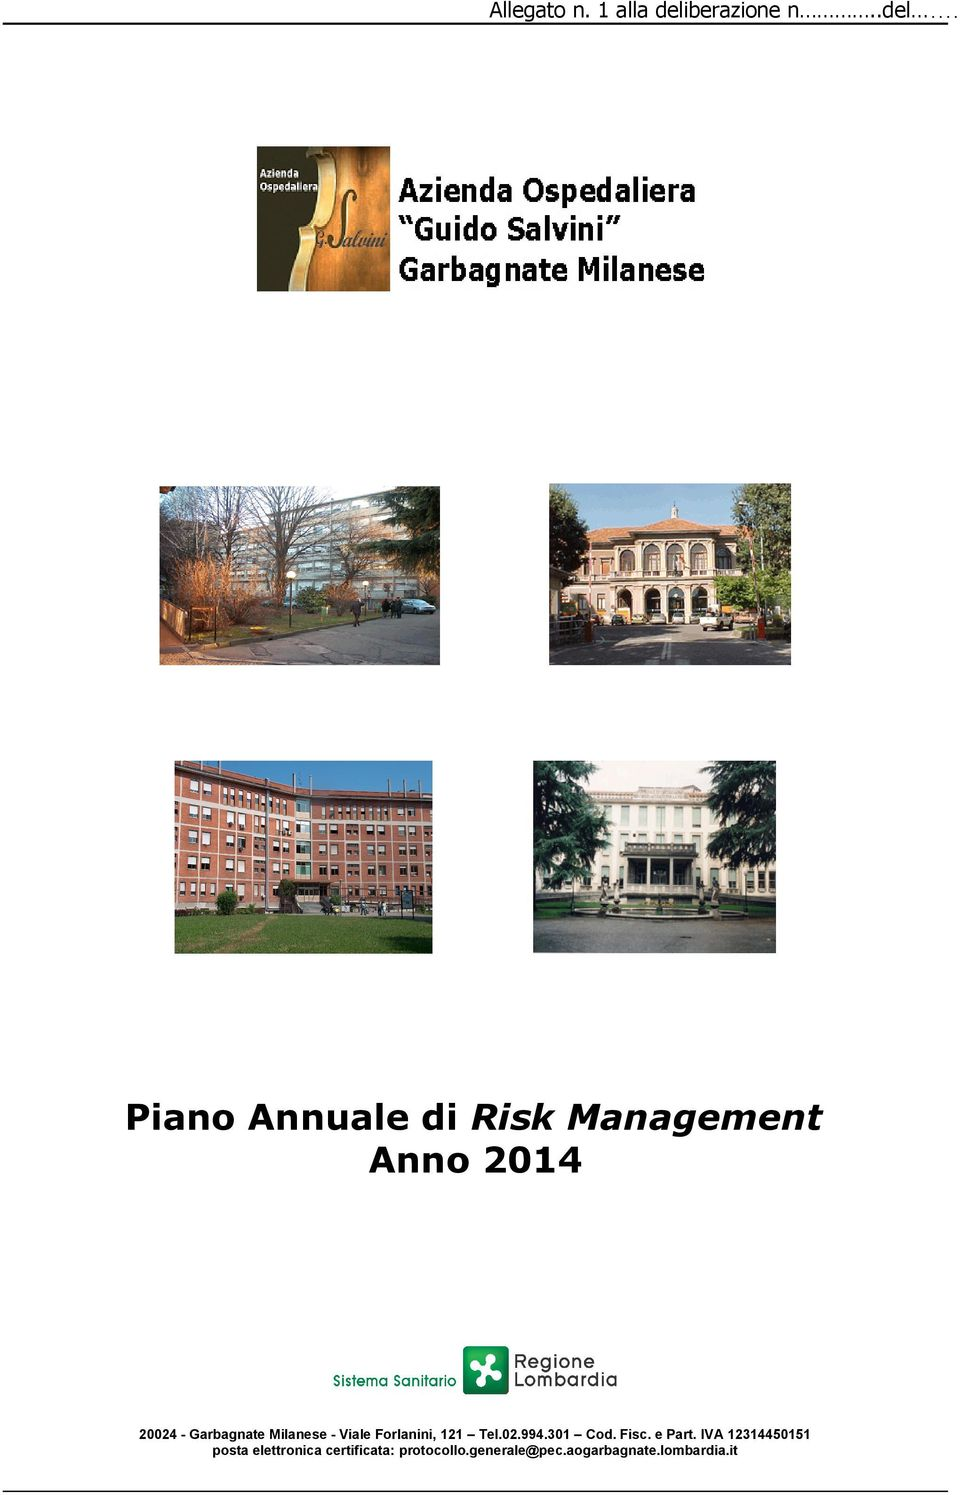 Piano Annuale di Risk Management Anno 2014 20024 - Garbagnate